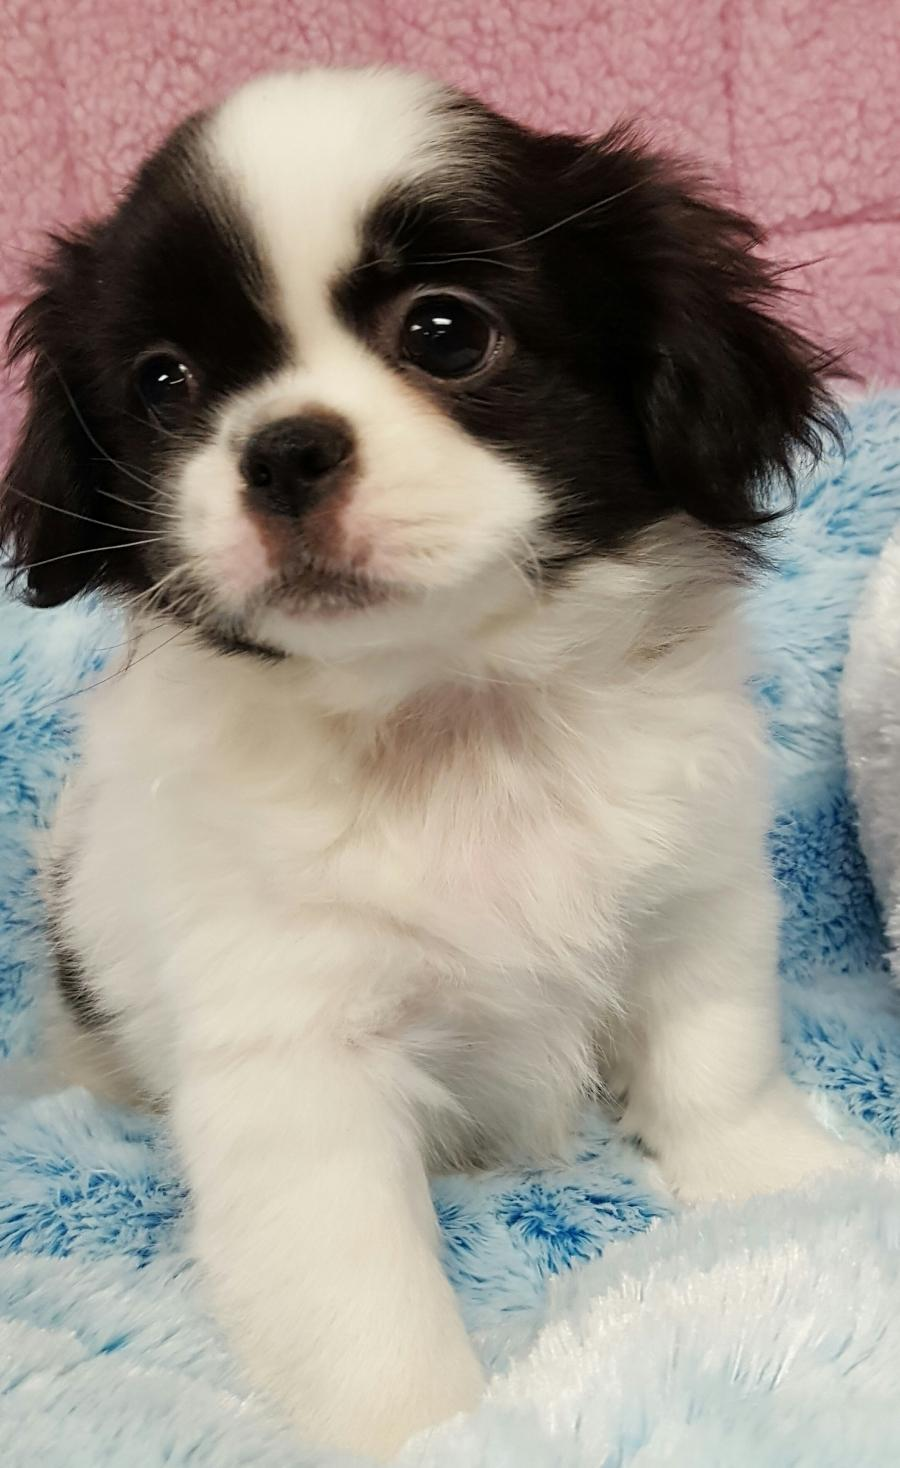 Shihtzu Japanese Chin Your Pet Store In Newmarket